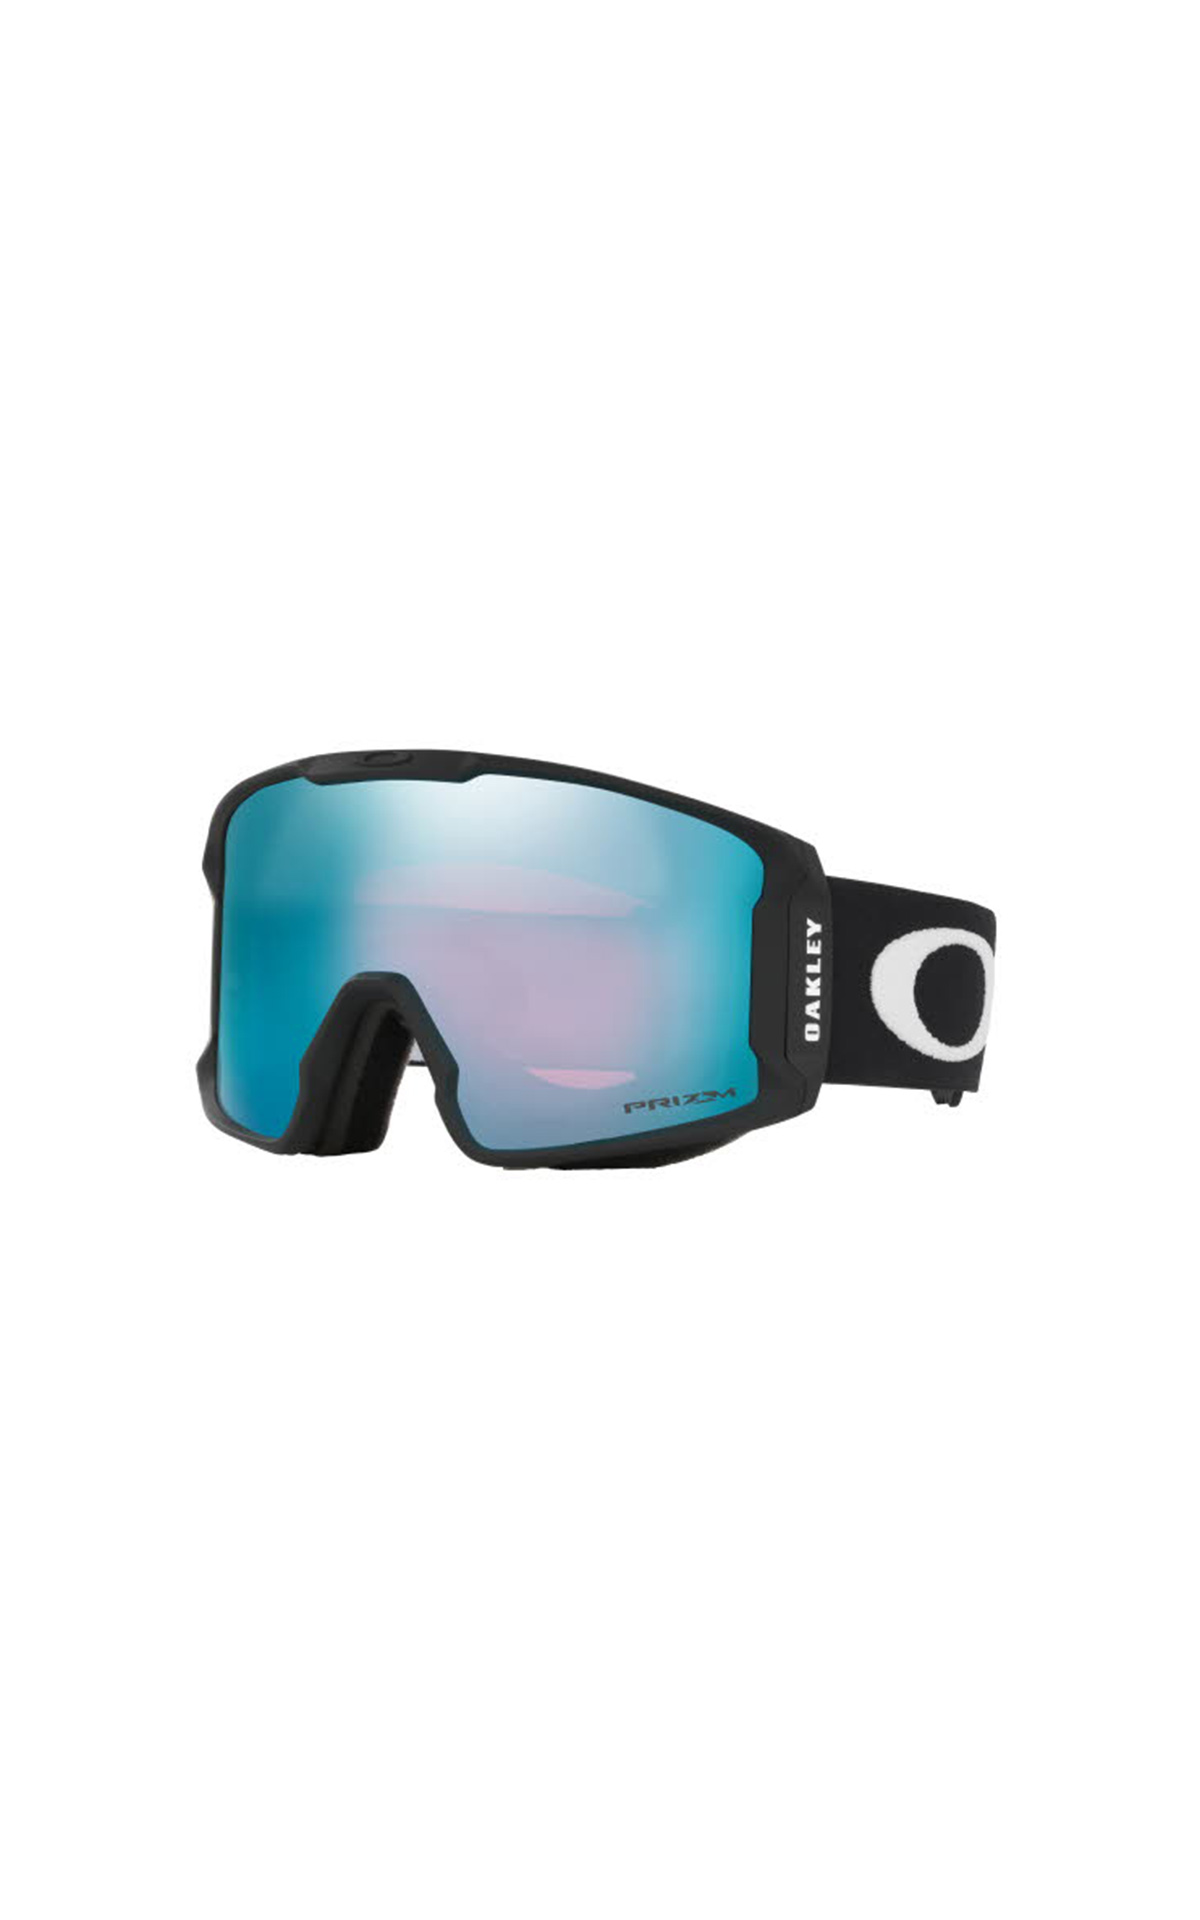 Oakley blue and black ski goggles SunglassHut